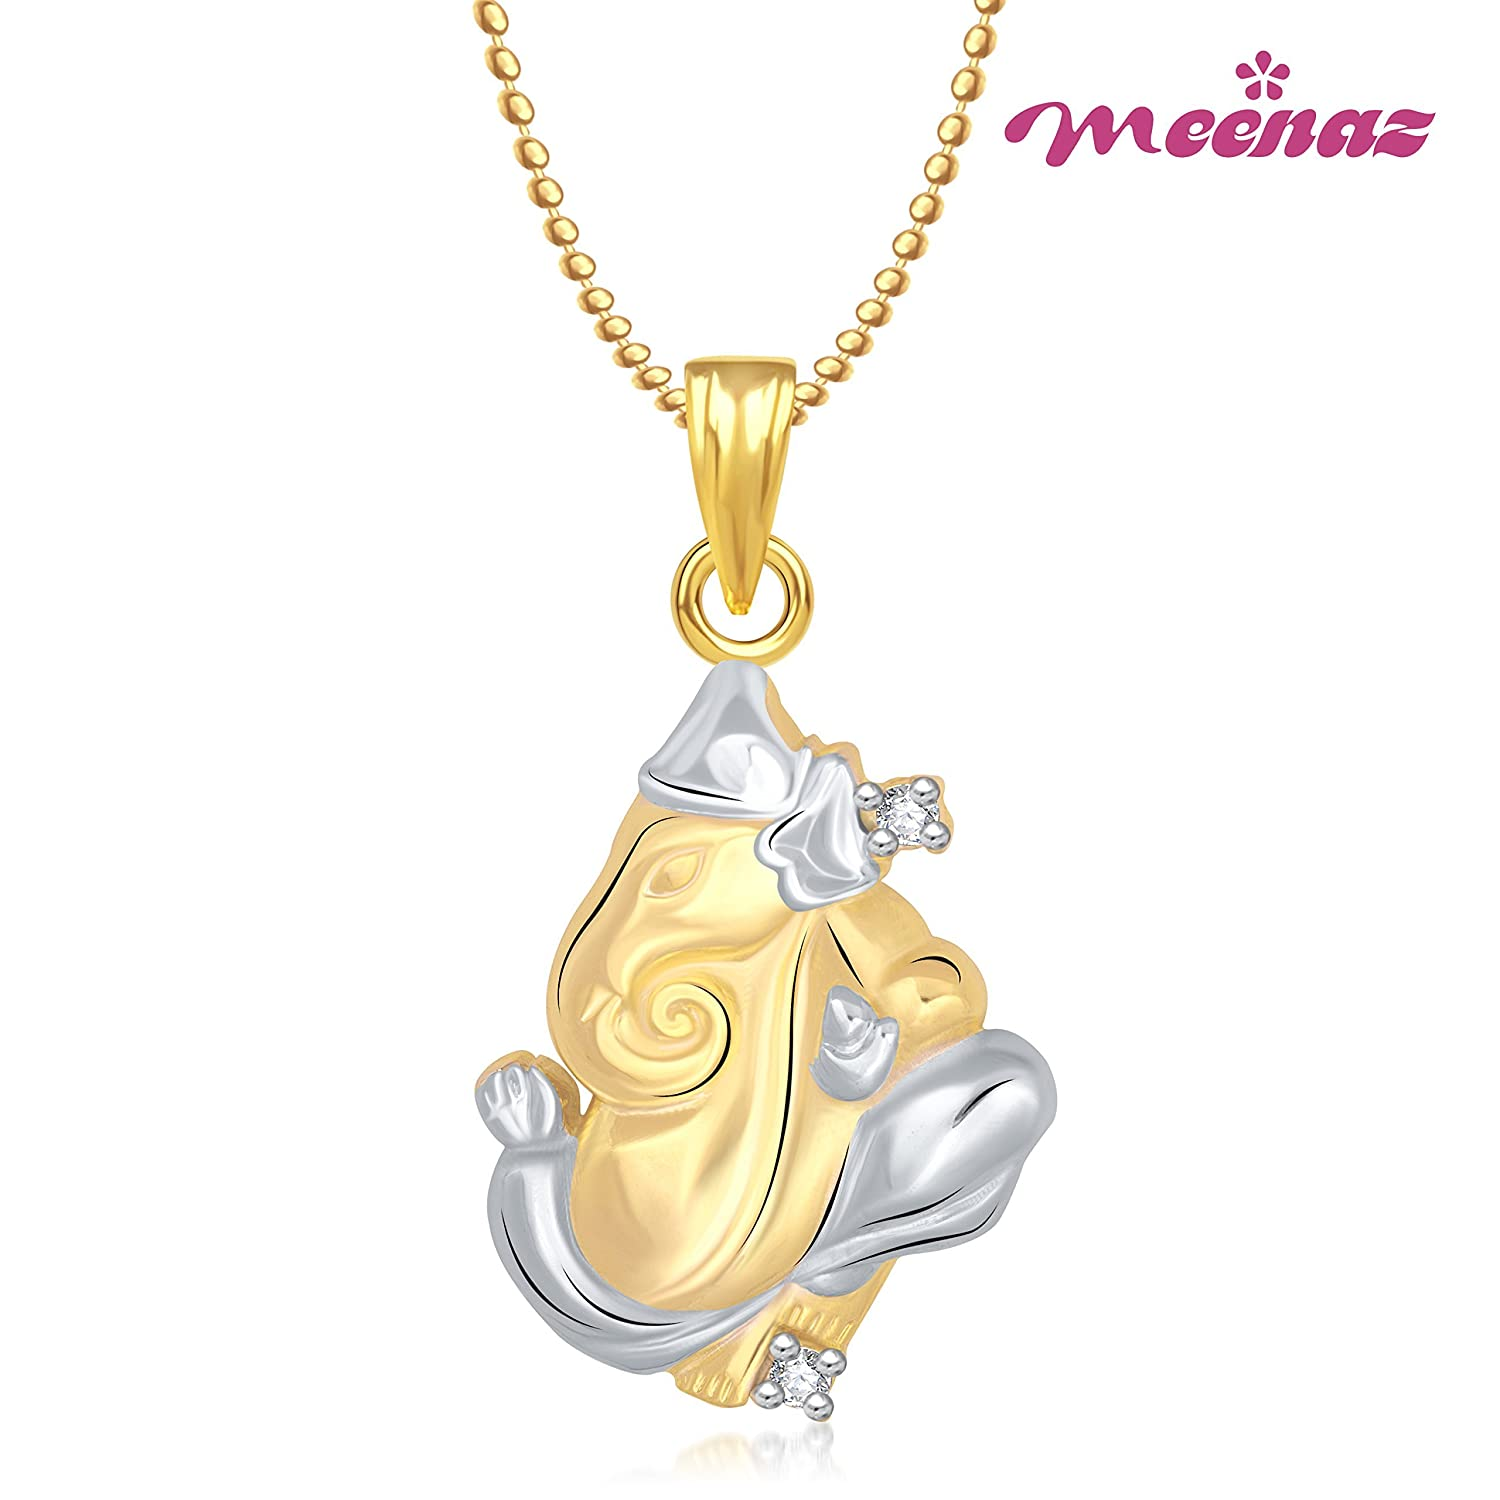 men gold locket letter dp in at pendant and low with heart prices women online for amazon alphabet plated lockets india bll chain buy meenaz a store jewellery